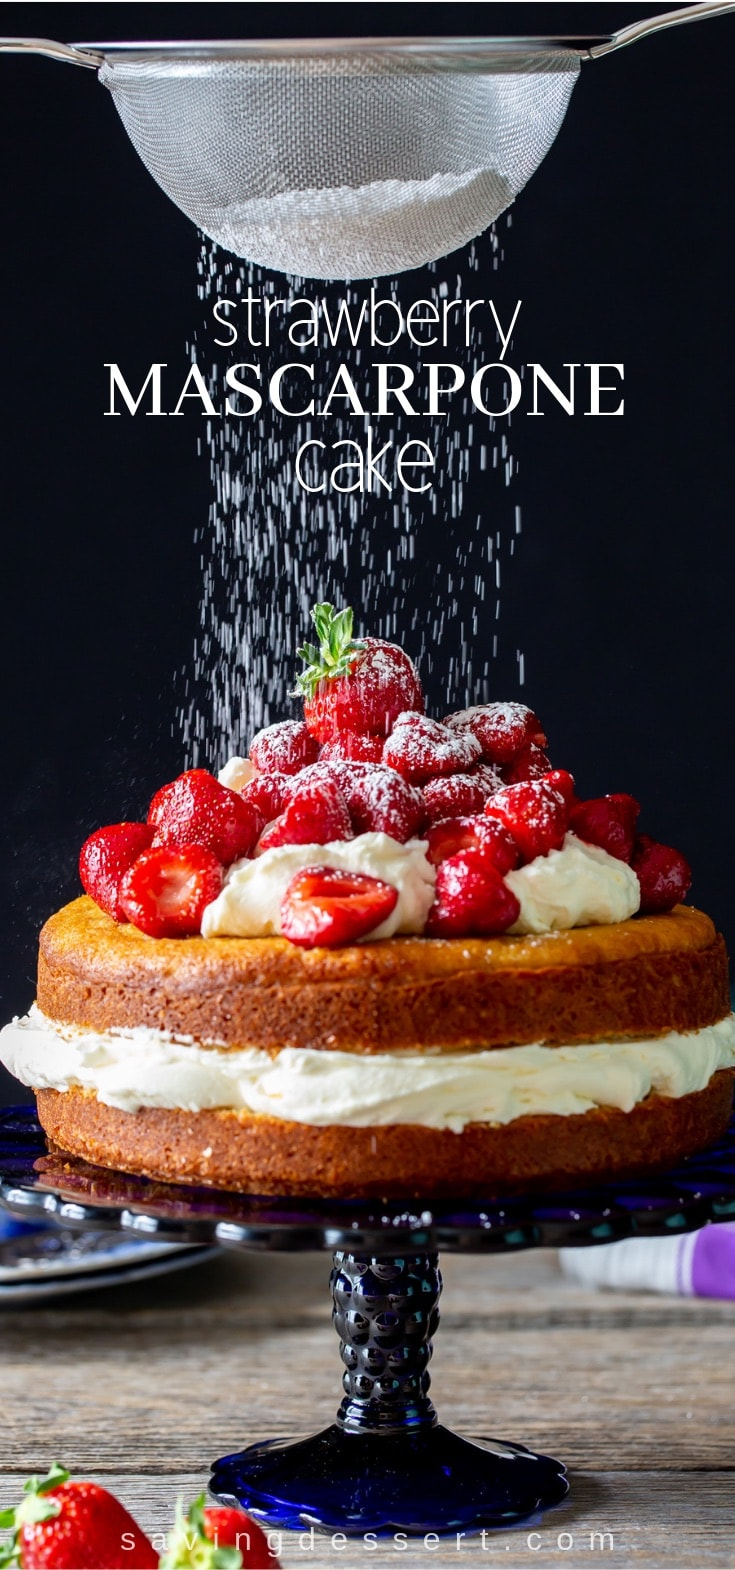 Strawberry Mascarpone Cake - a simple lemon scented cake filled with mascarpone cream and topped with Grand Marnier soaked strawberries.  #Strawberries #strawberrycake #mascarpone #dessert #cake #mascarponebake #easycake #summercake